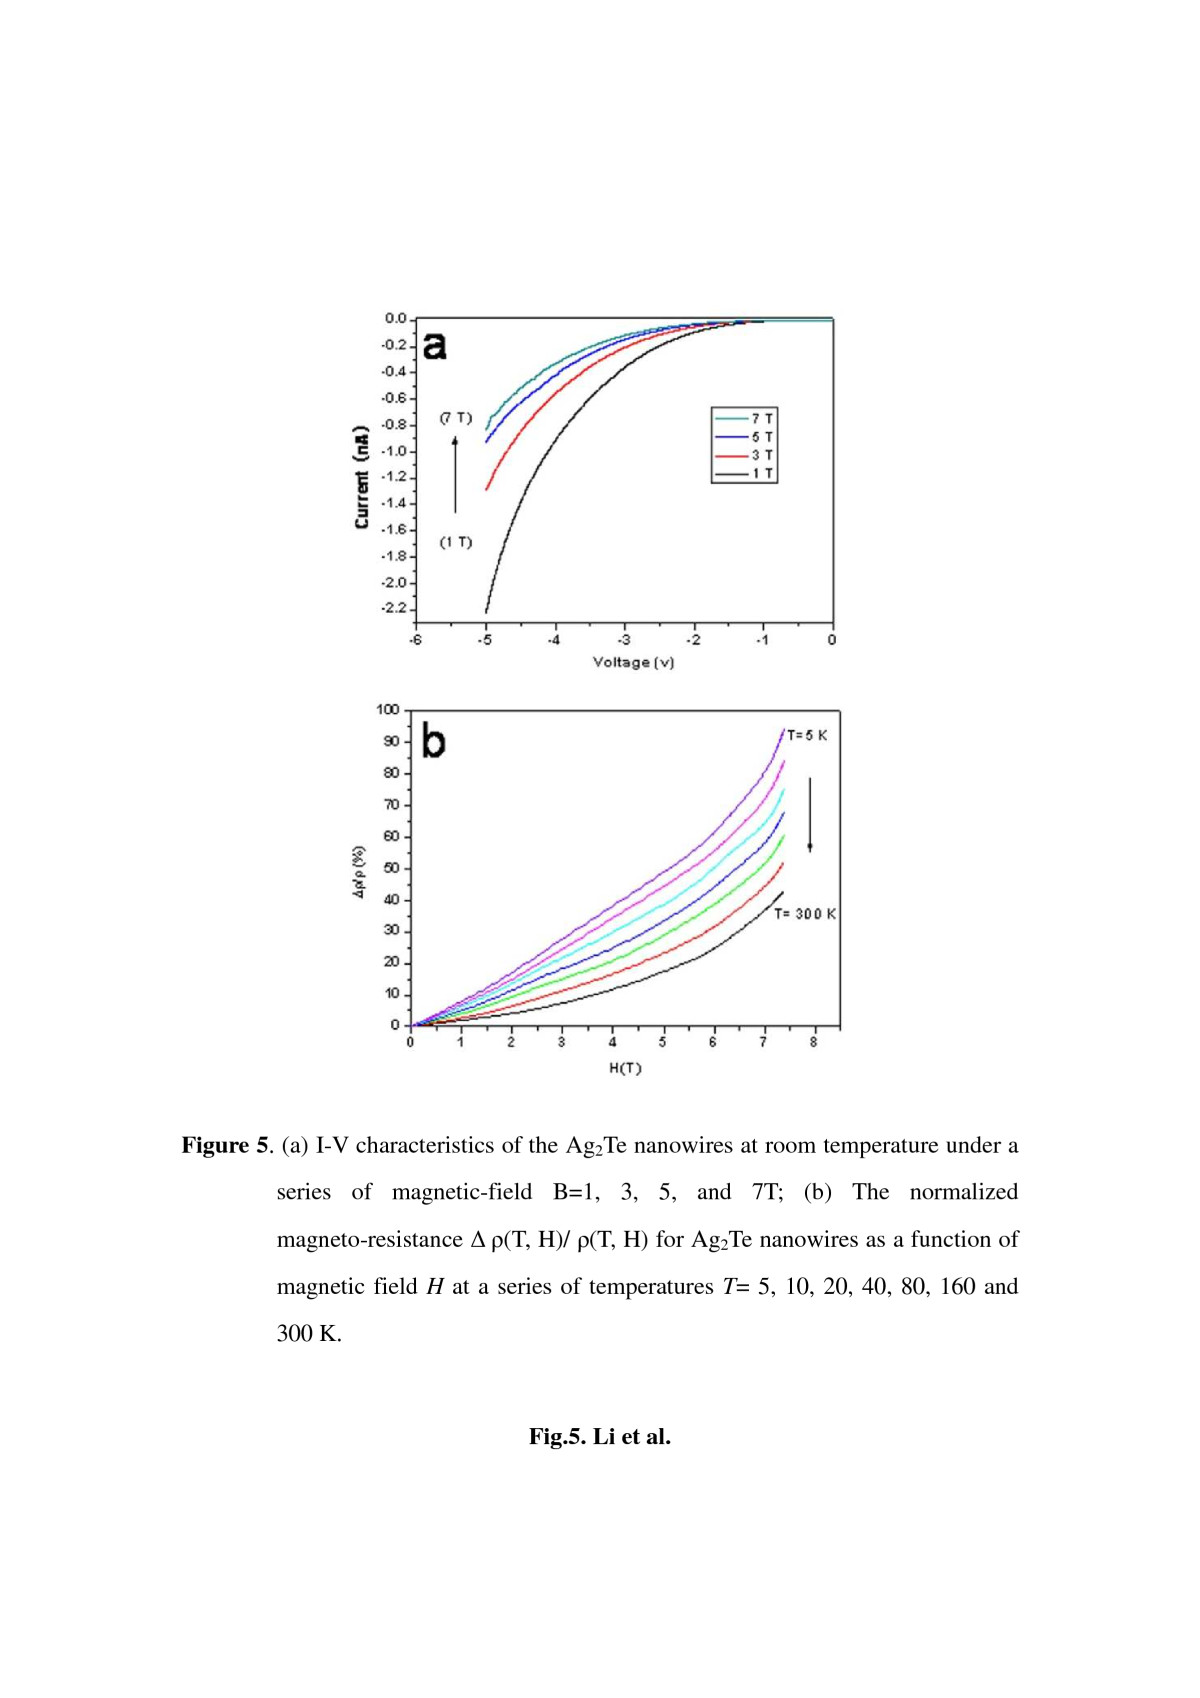 https://static-content.springer.com/image/art%3A10.1186%2F1556-276X-8-356/MediaObjects/11671_2013_Article_1597_Fig5_HTML.jpg